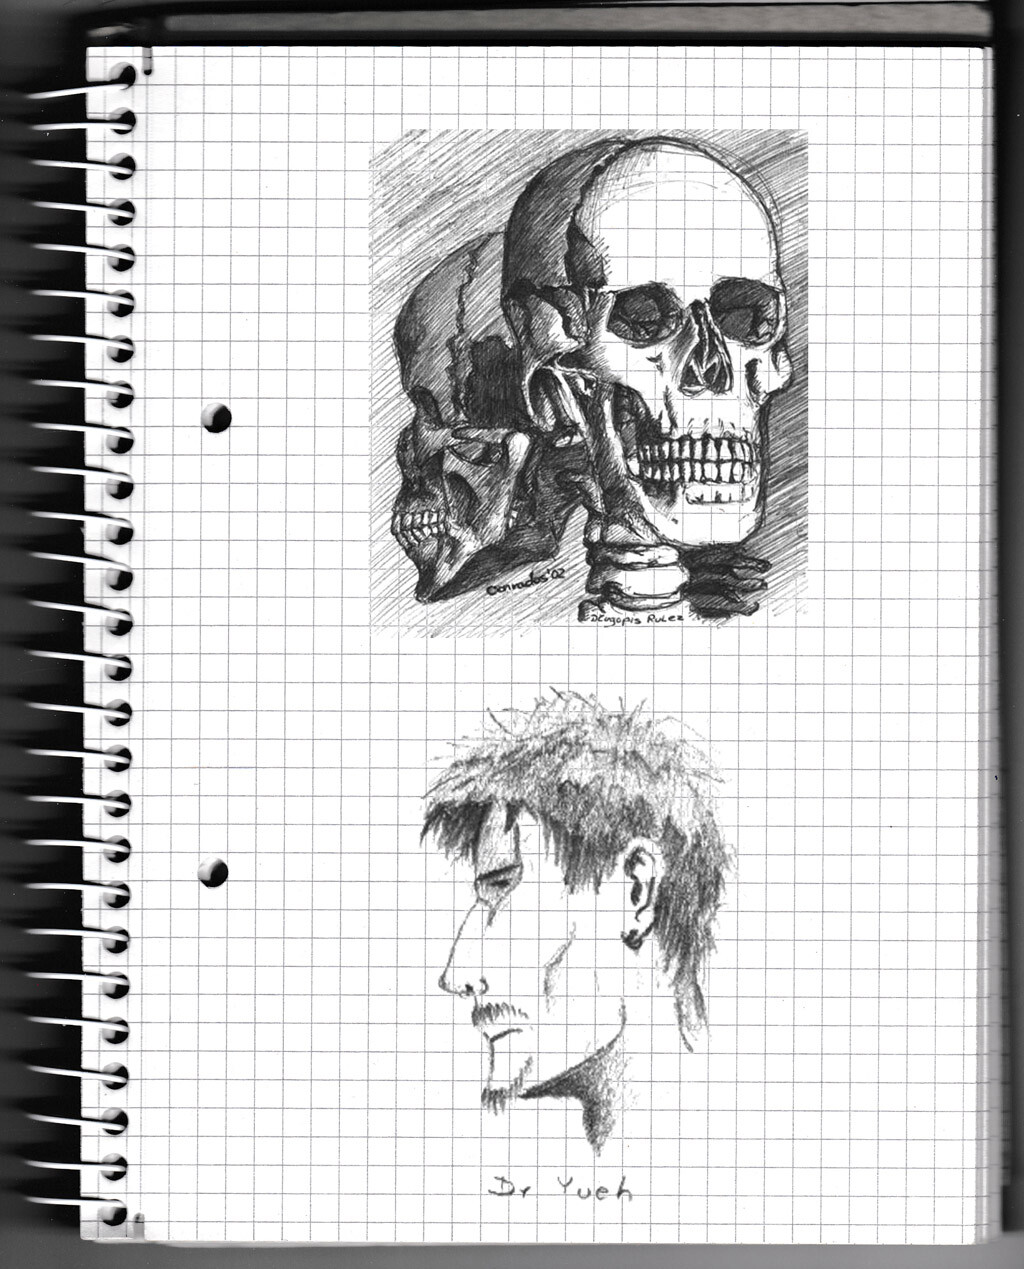 character, sketch, pencil, monster, creature, skull, face,